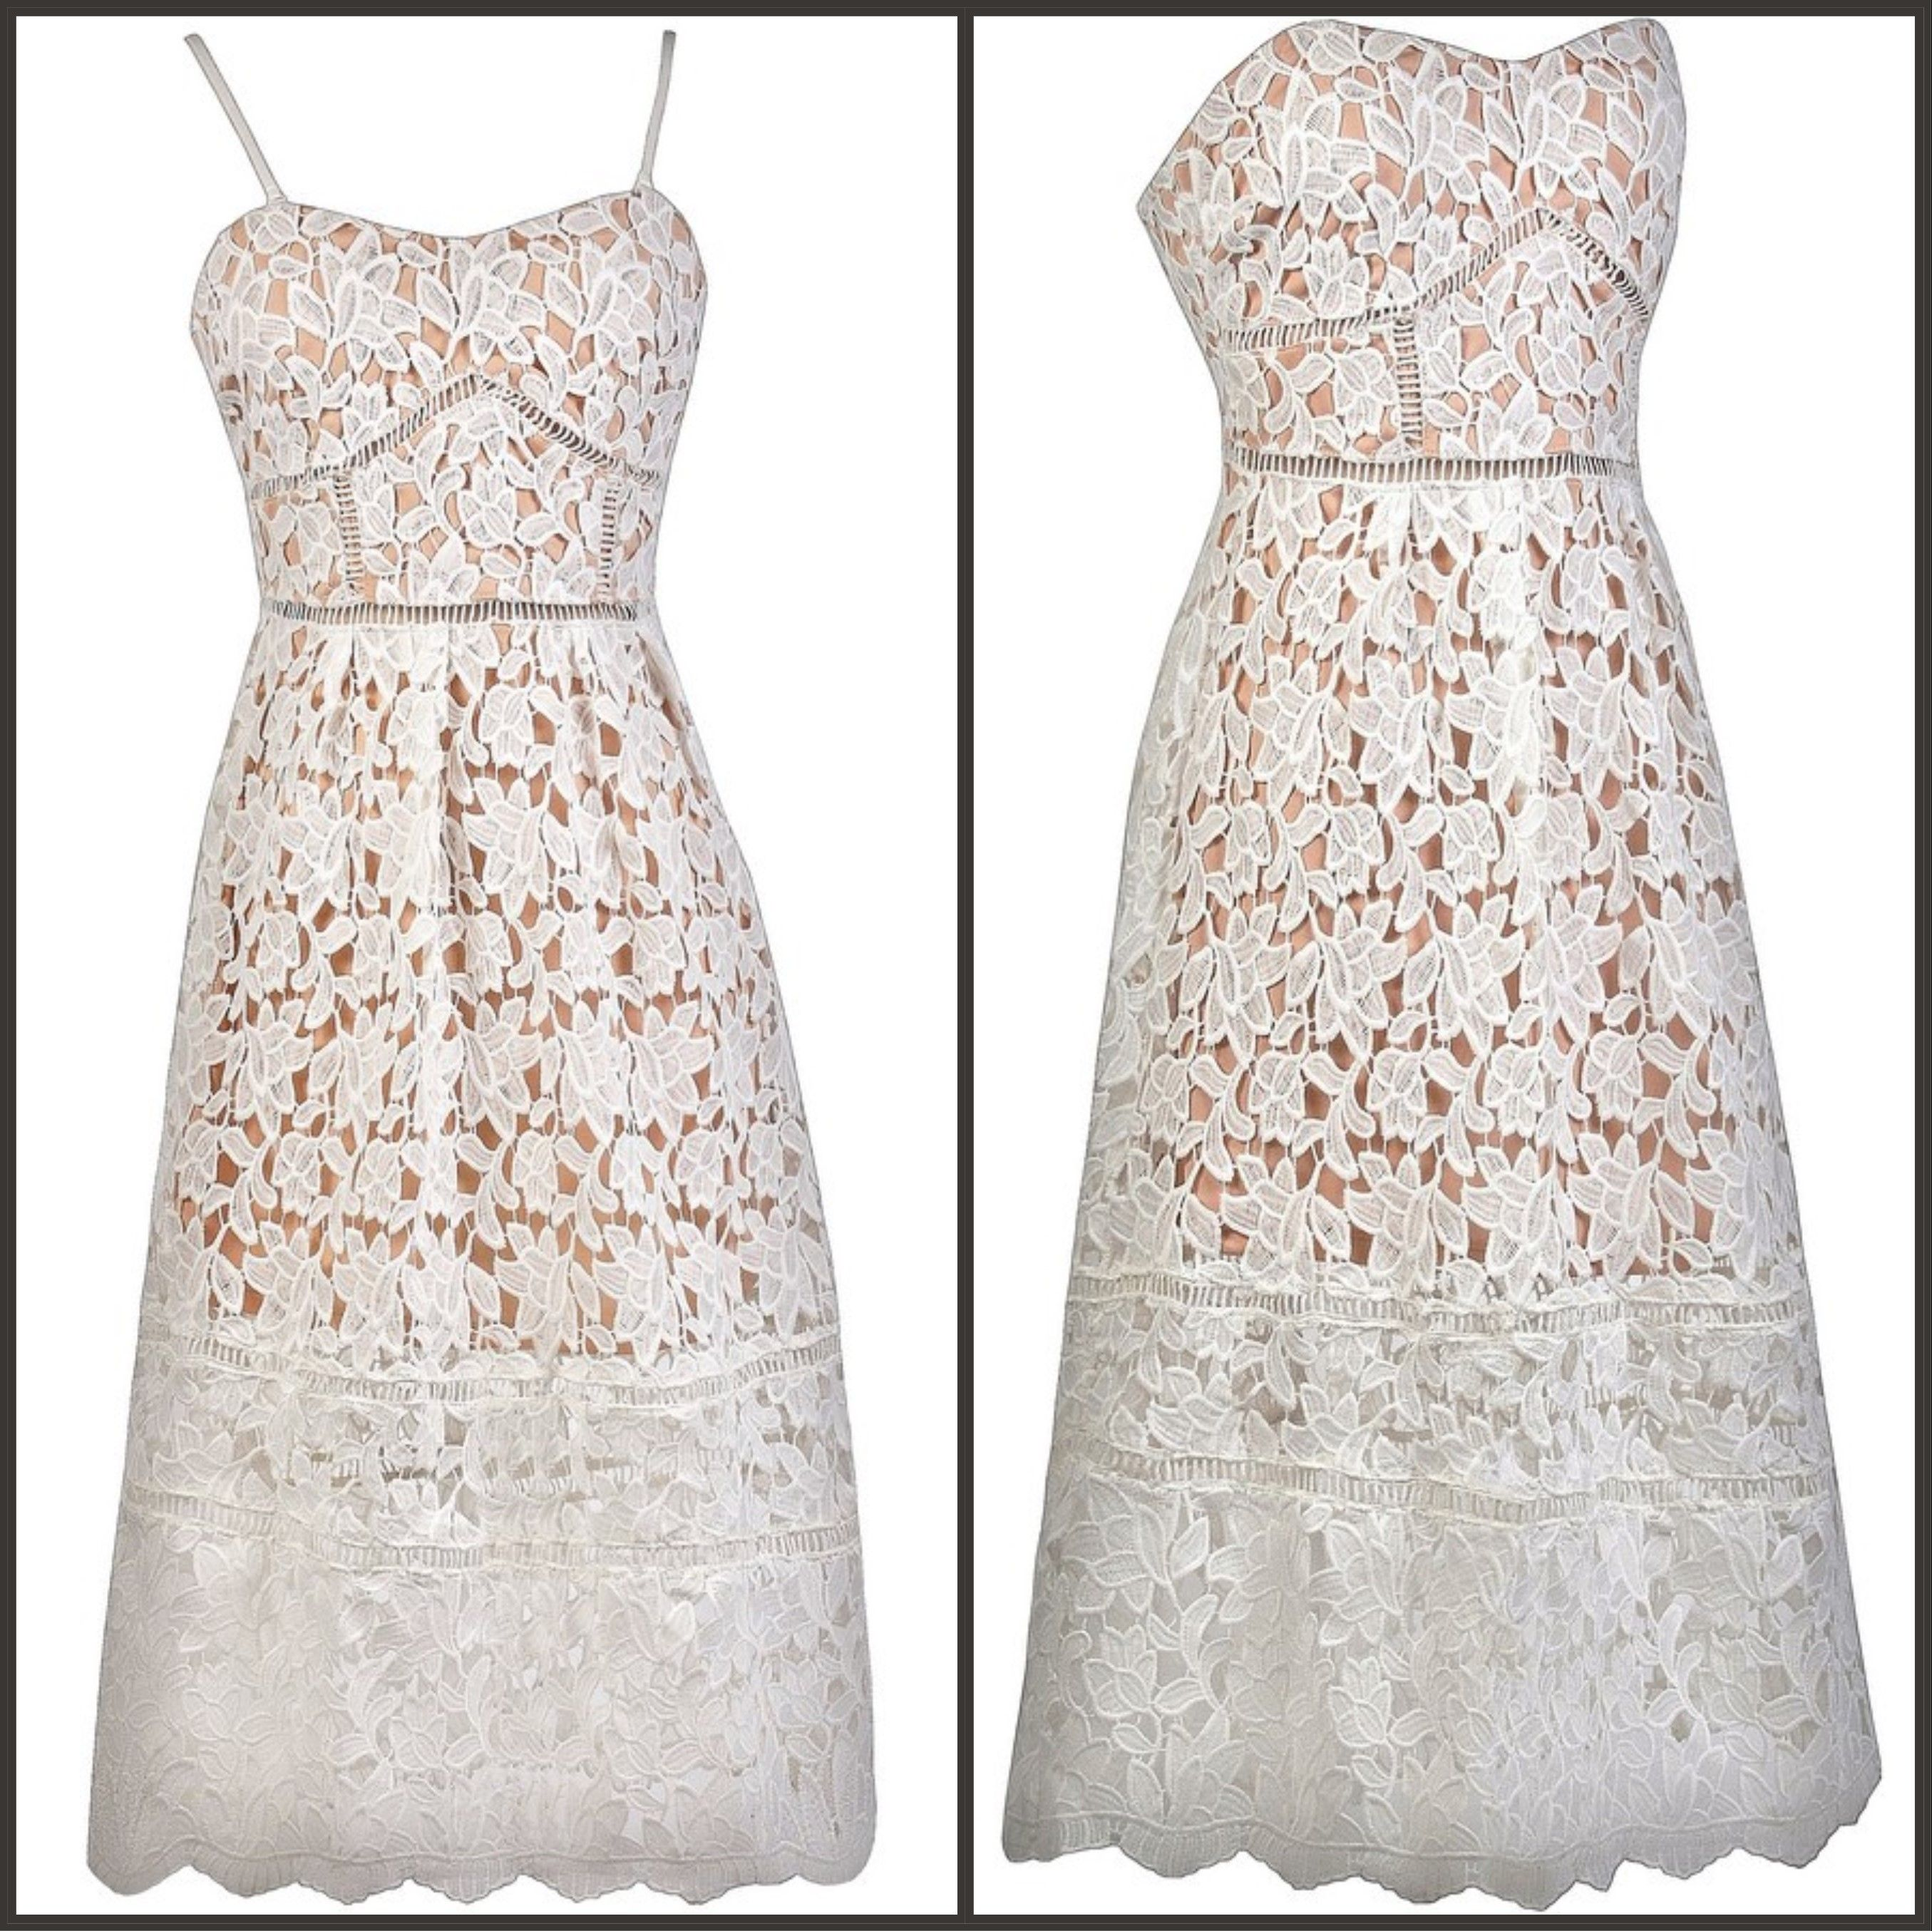 Lace dress maxi  This off white lace dress has a longer length midi cut ss